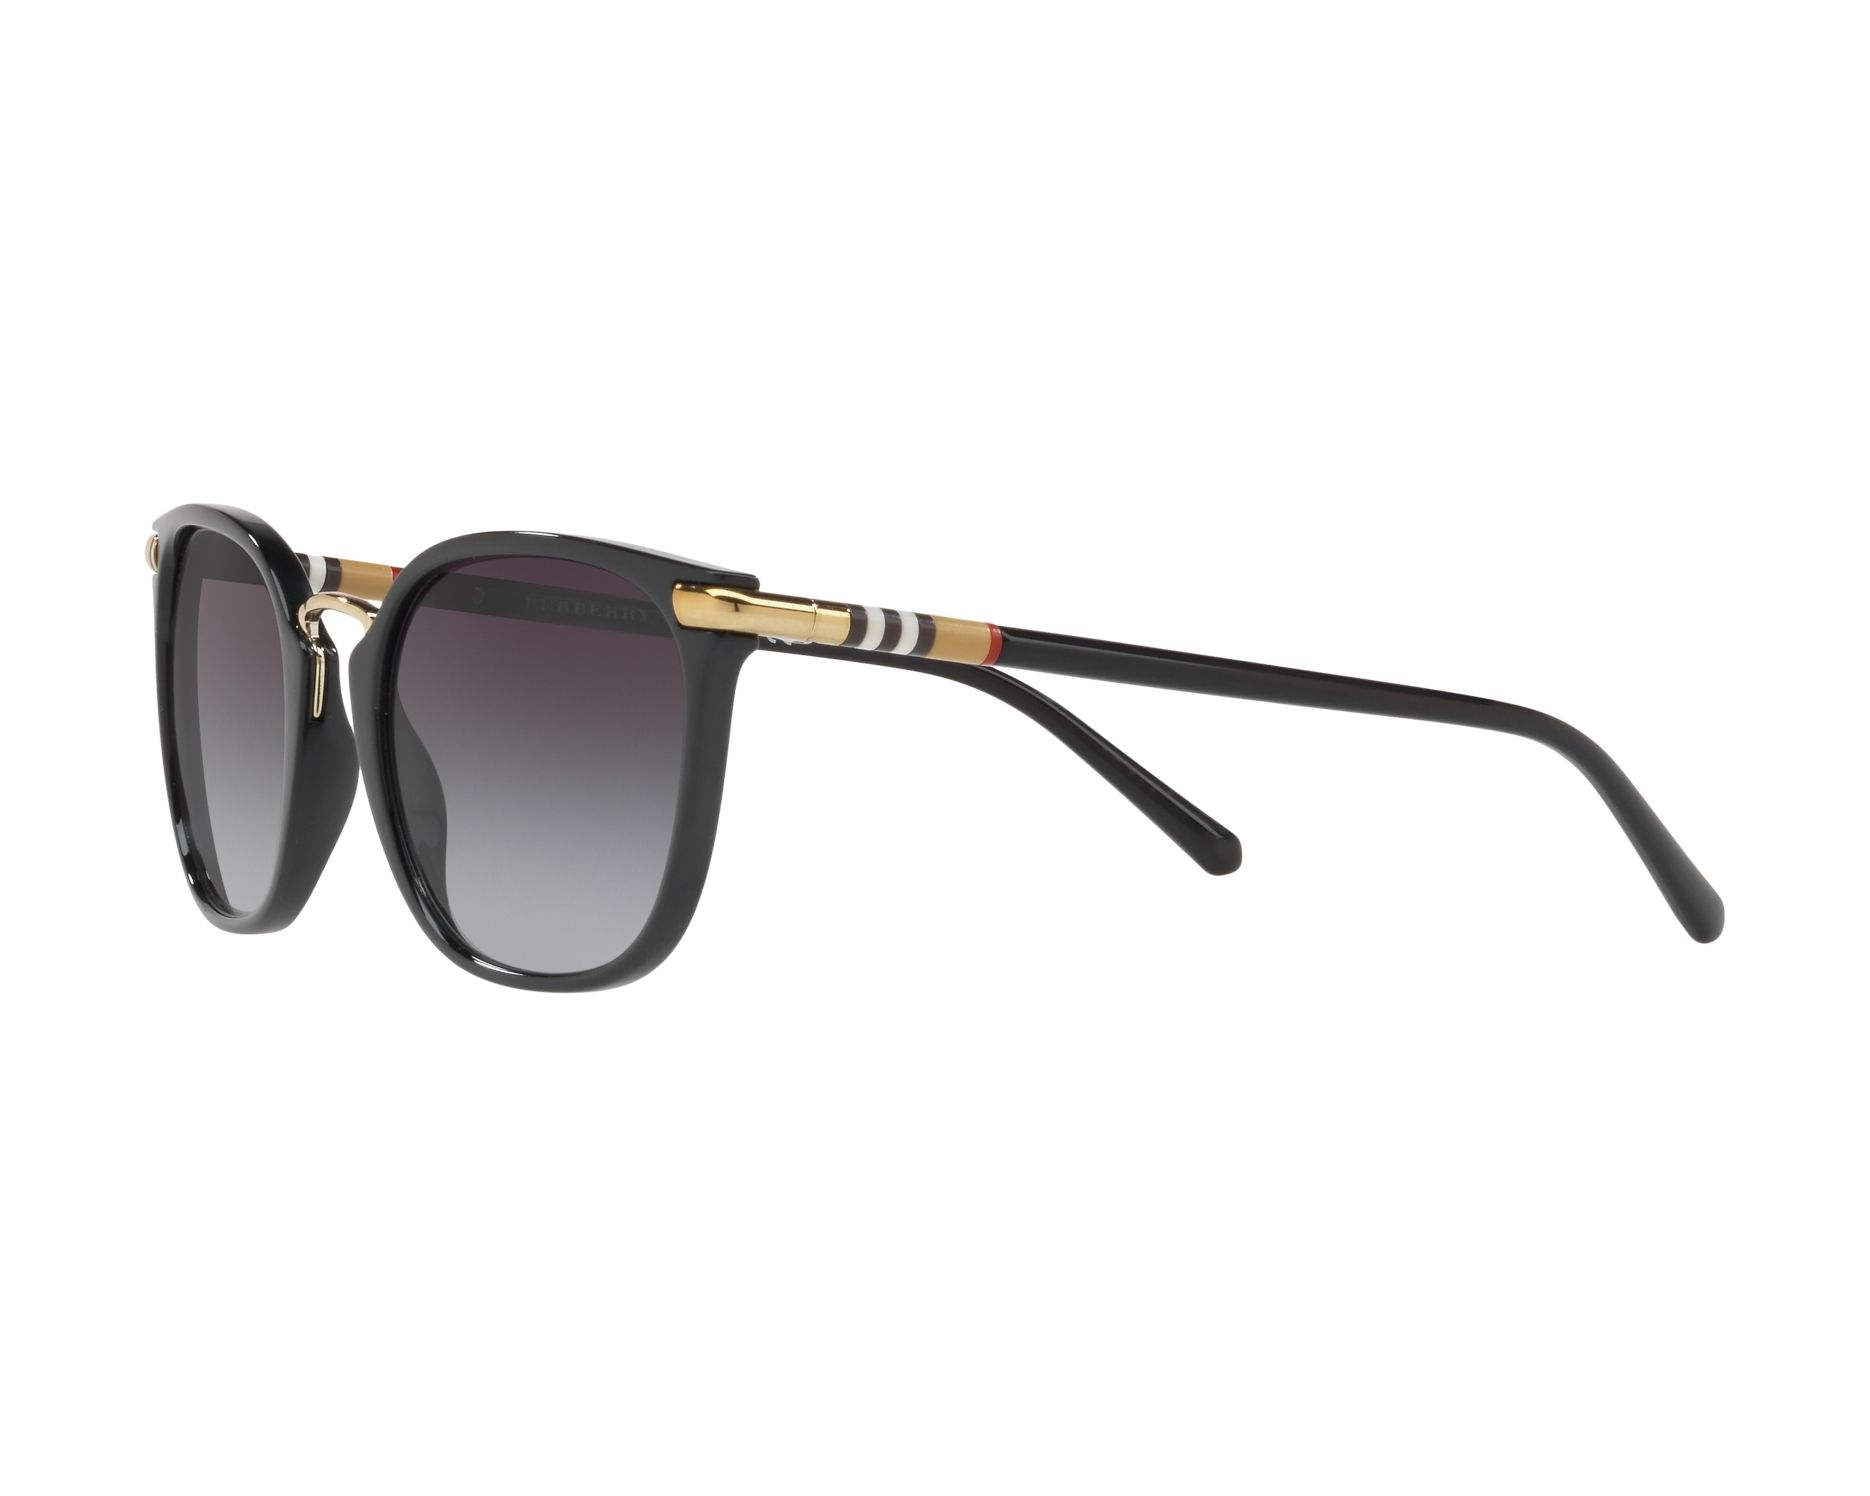 2257d09068 Sunglasses Burberry BE-4262 30018G 53-21 Black Gold 360 degree view 3